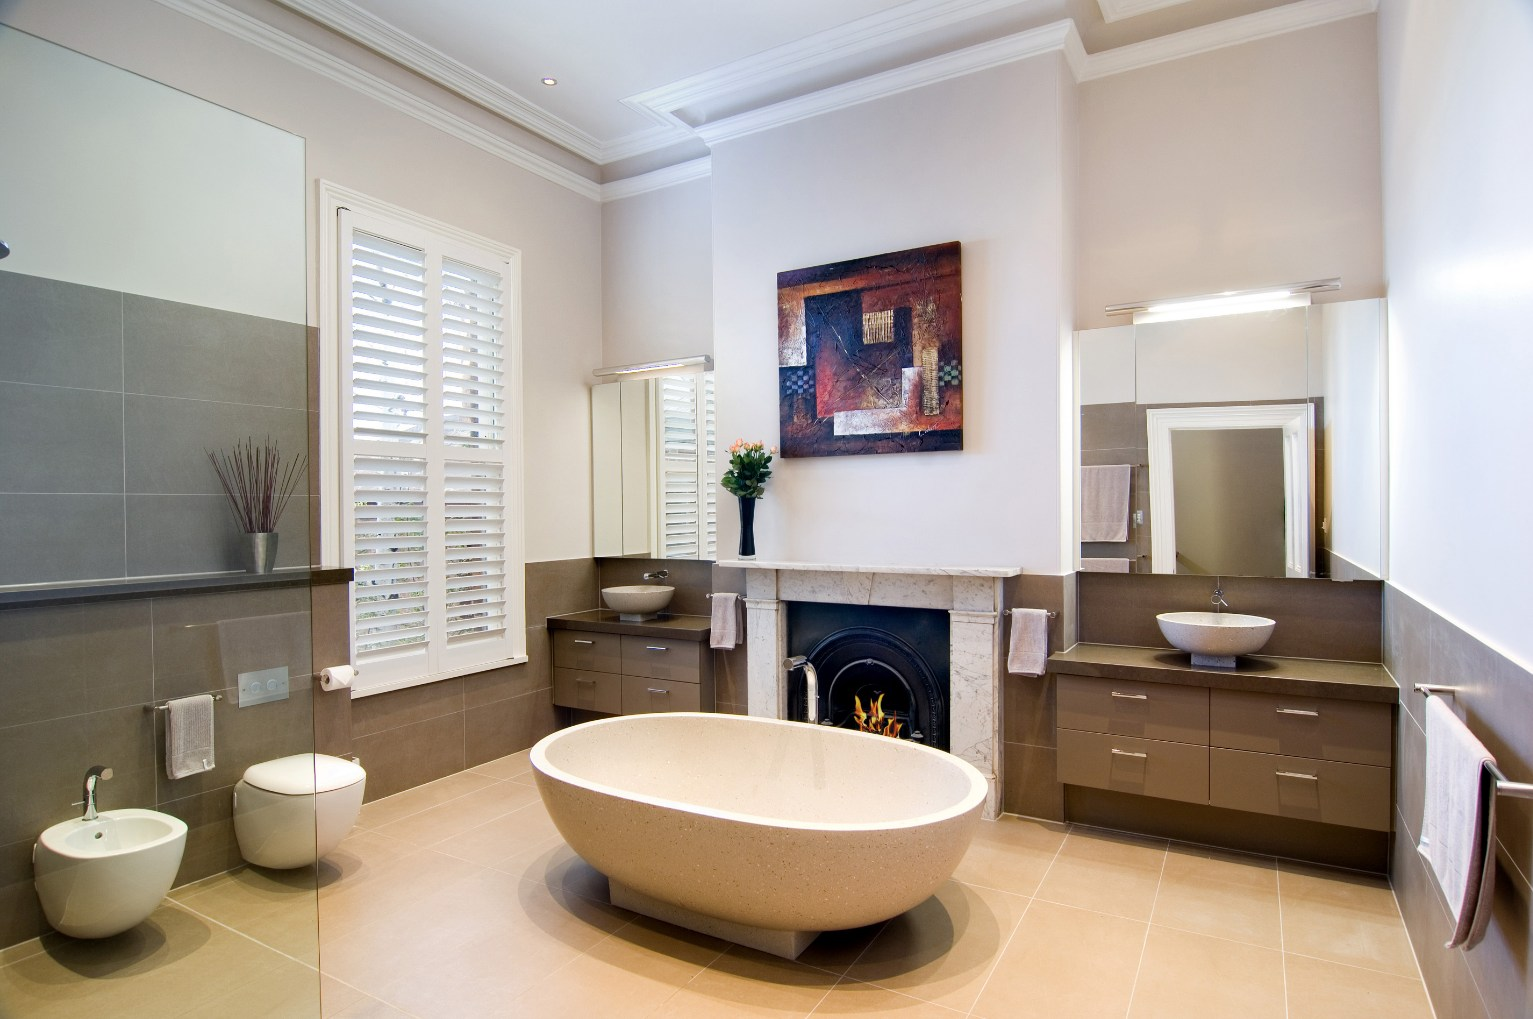 5 inspirations pour la salle de bain miliboo blog for Remodeling bathroom ideas older homes